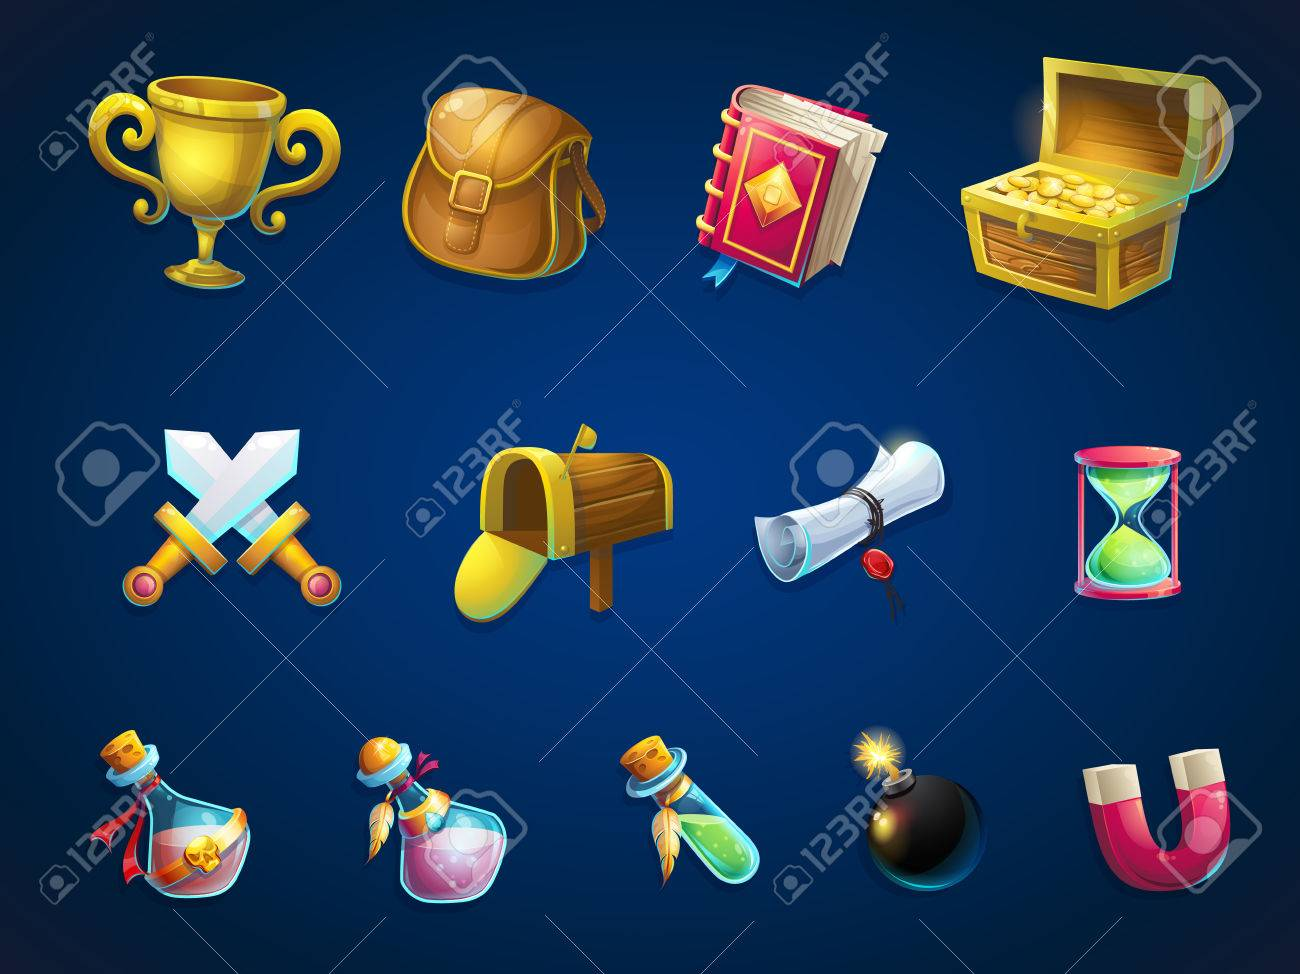 Set of different items. background illustration screen to the computer game Atlantis ruins. Bright background image to create original video or web games, graphic design, screen savers. - 57963106